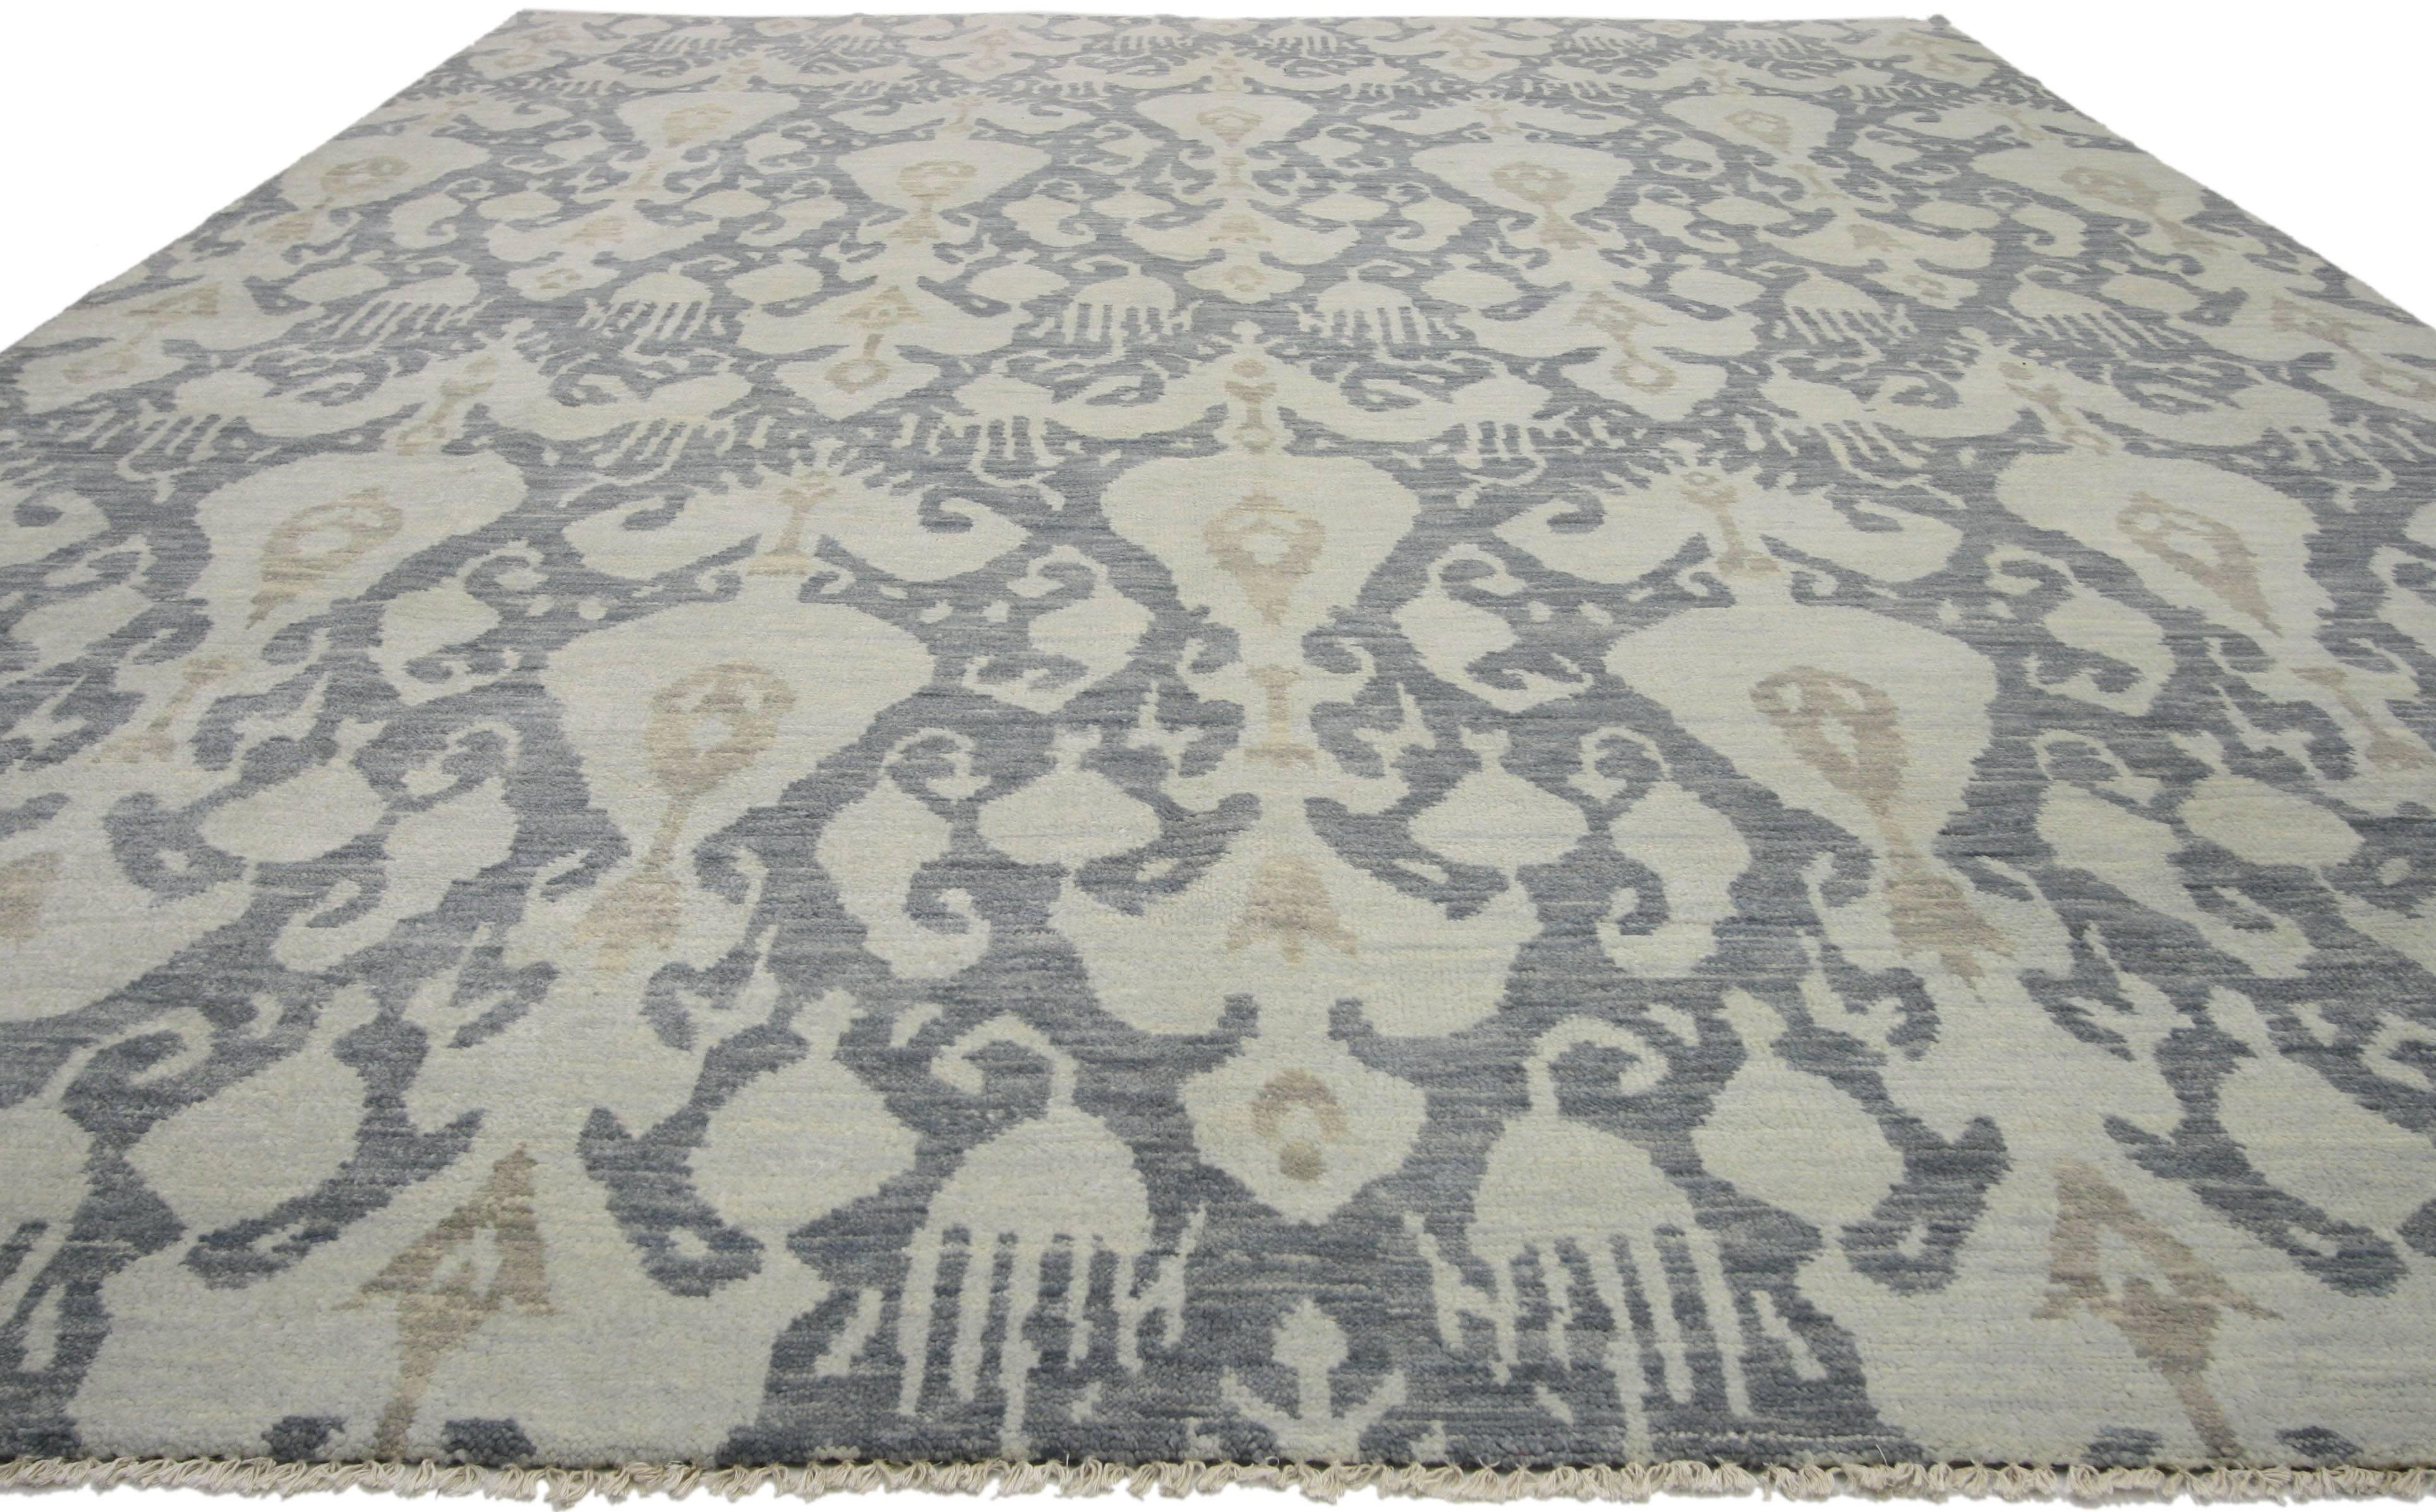 New Modern Transitional Ikat Style Area Rug, Gray-Blue Ikat Rug For